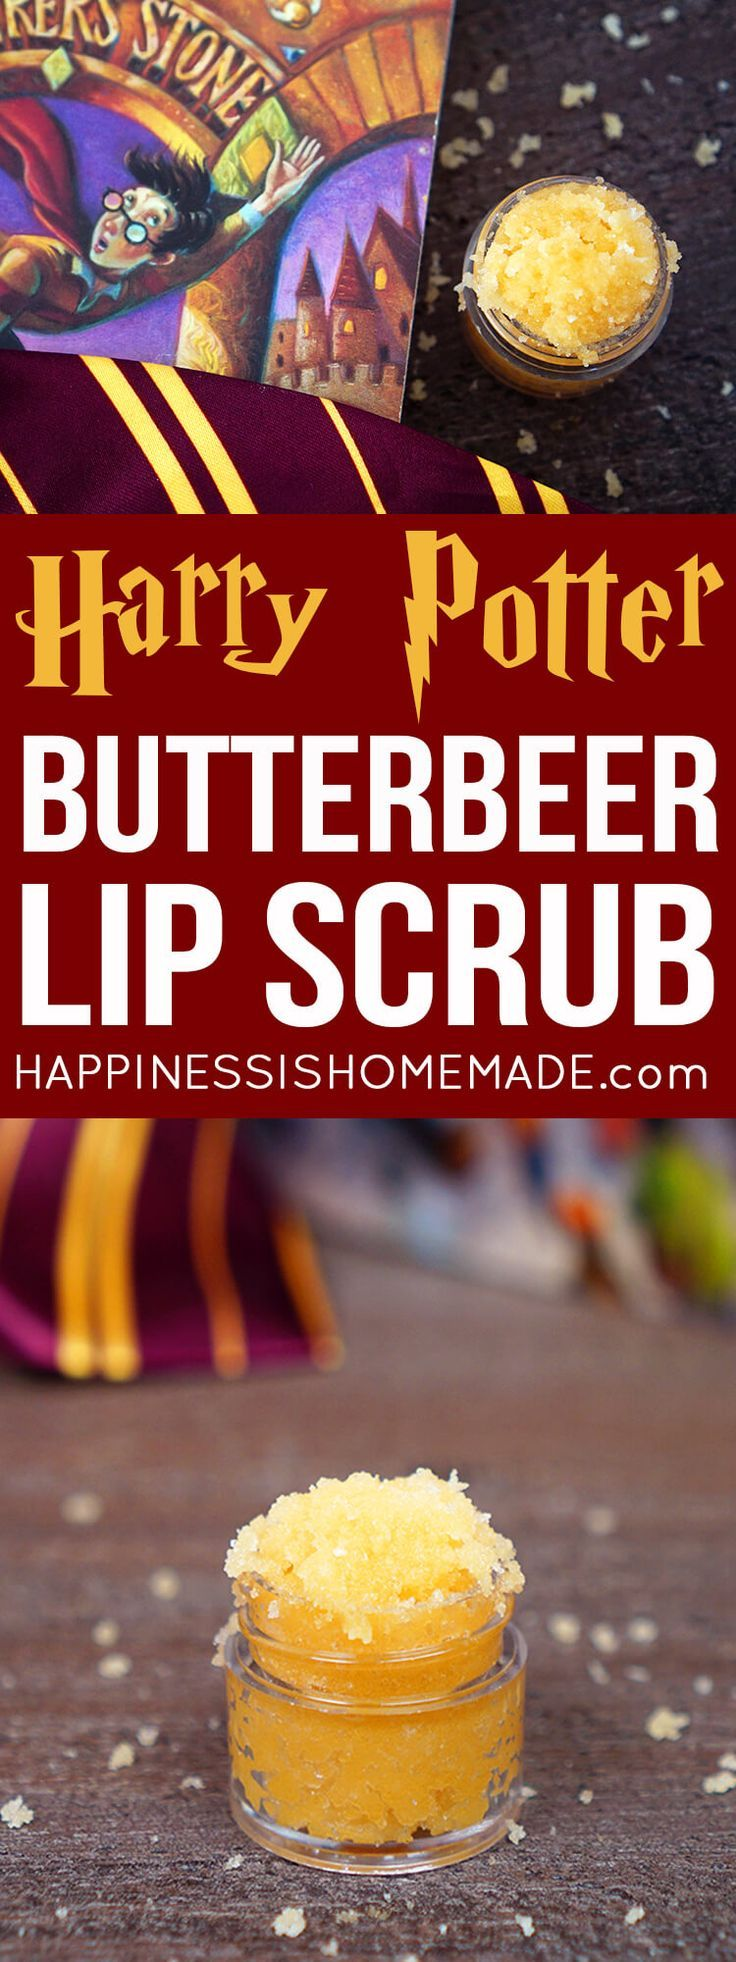 This delicious Butterbeer Sugar Scrub recipe is incredible (and SO easy to make!)! Make a small batch of Butterbeer Lip Scrub or a bigger batch to smooth your entire body and leave your skin soft and silky! A great homemade gift idea for Harry Potter fans! via @hiHomemadeBlog